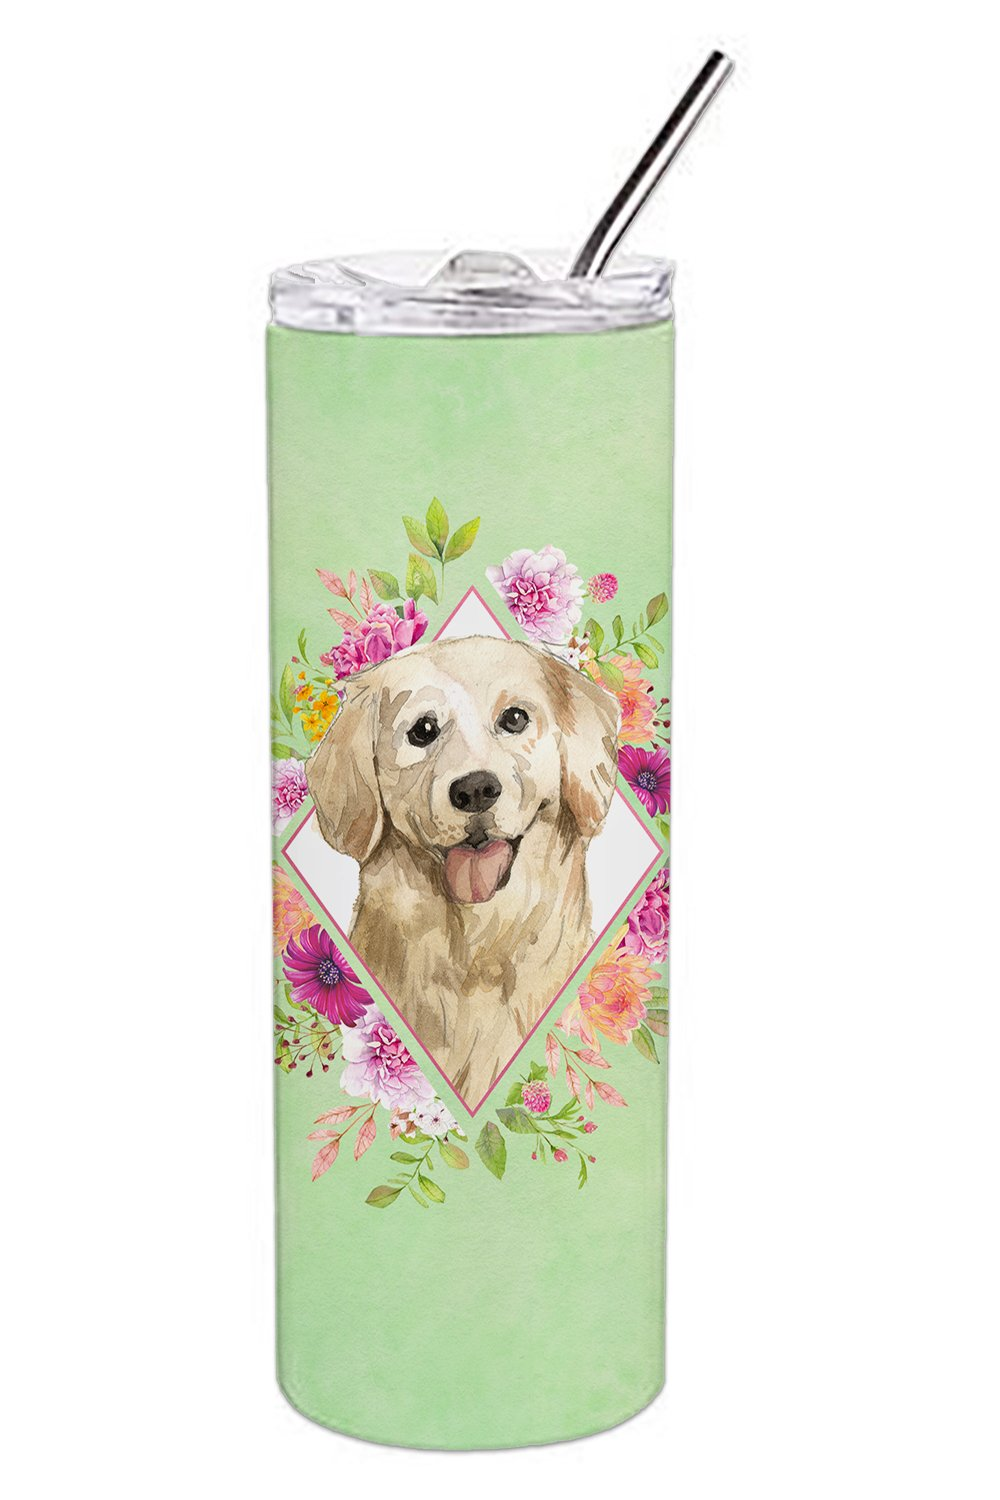 Golden Retriever Green Flowers Double Walled Stainless Steel 20 oz Skinny Tumbler CK4395TBL20 by Caroline's Treasures